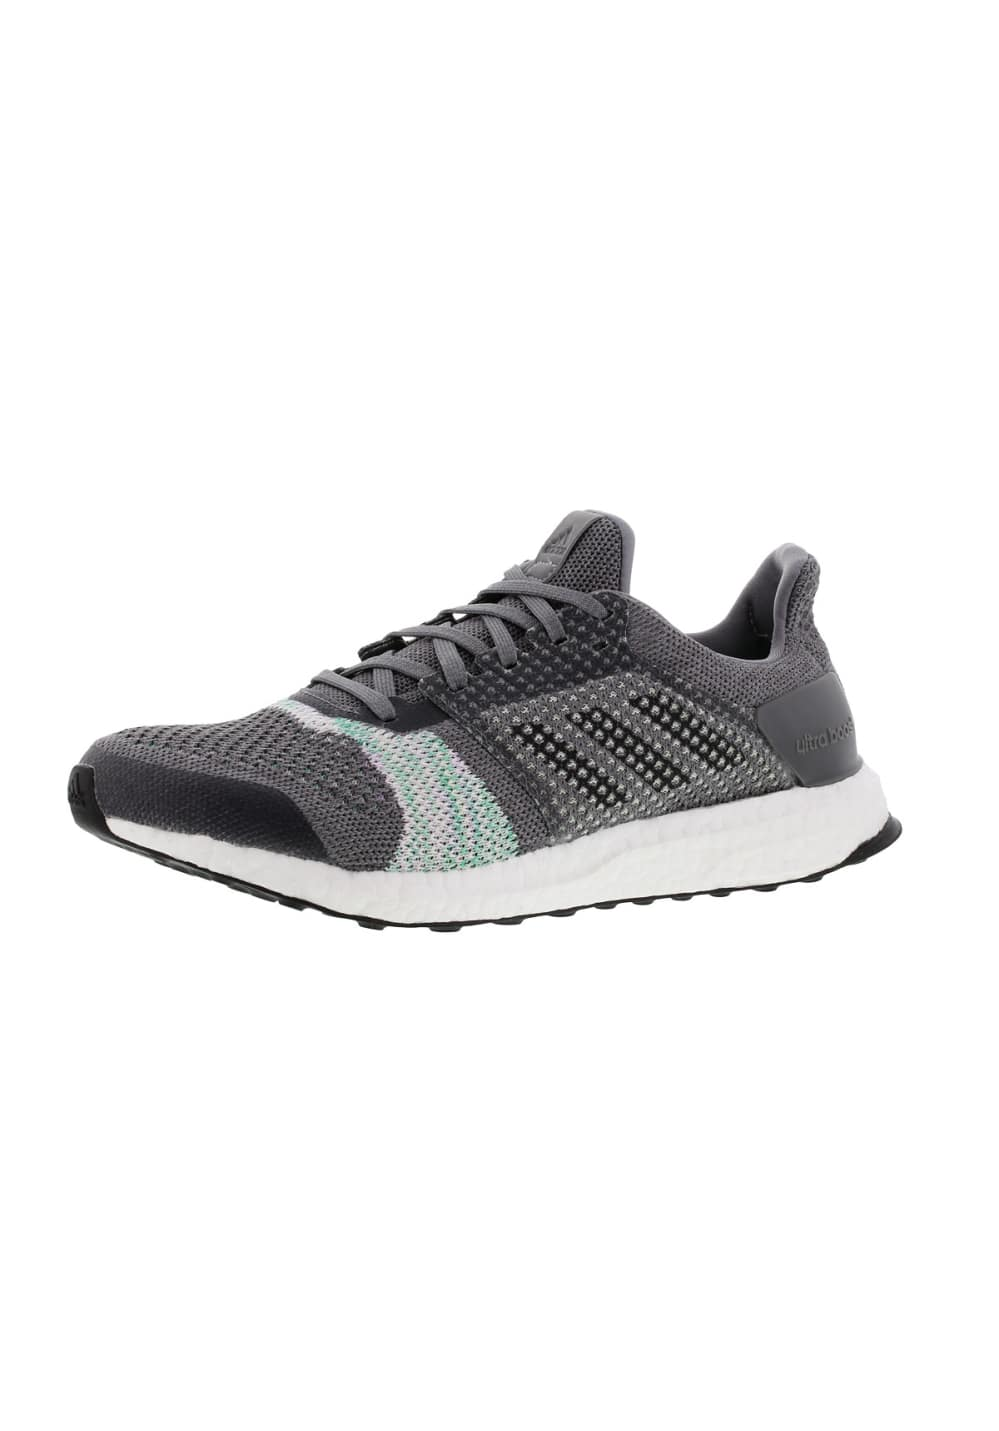 d304c63c998 Next. -60%. adidas. Ultraboost St - Running shoes for Women